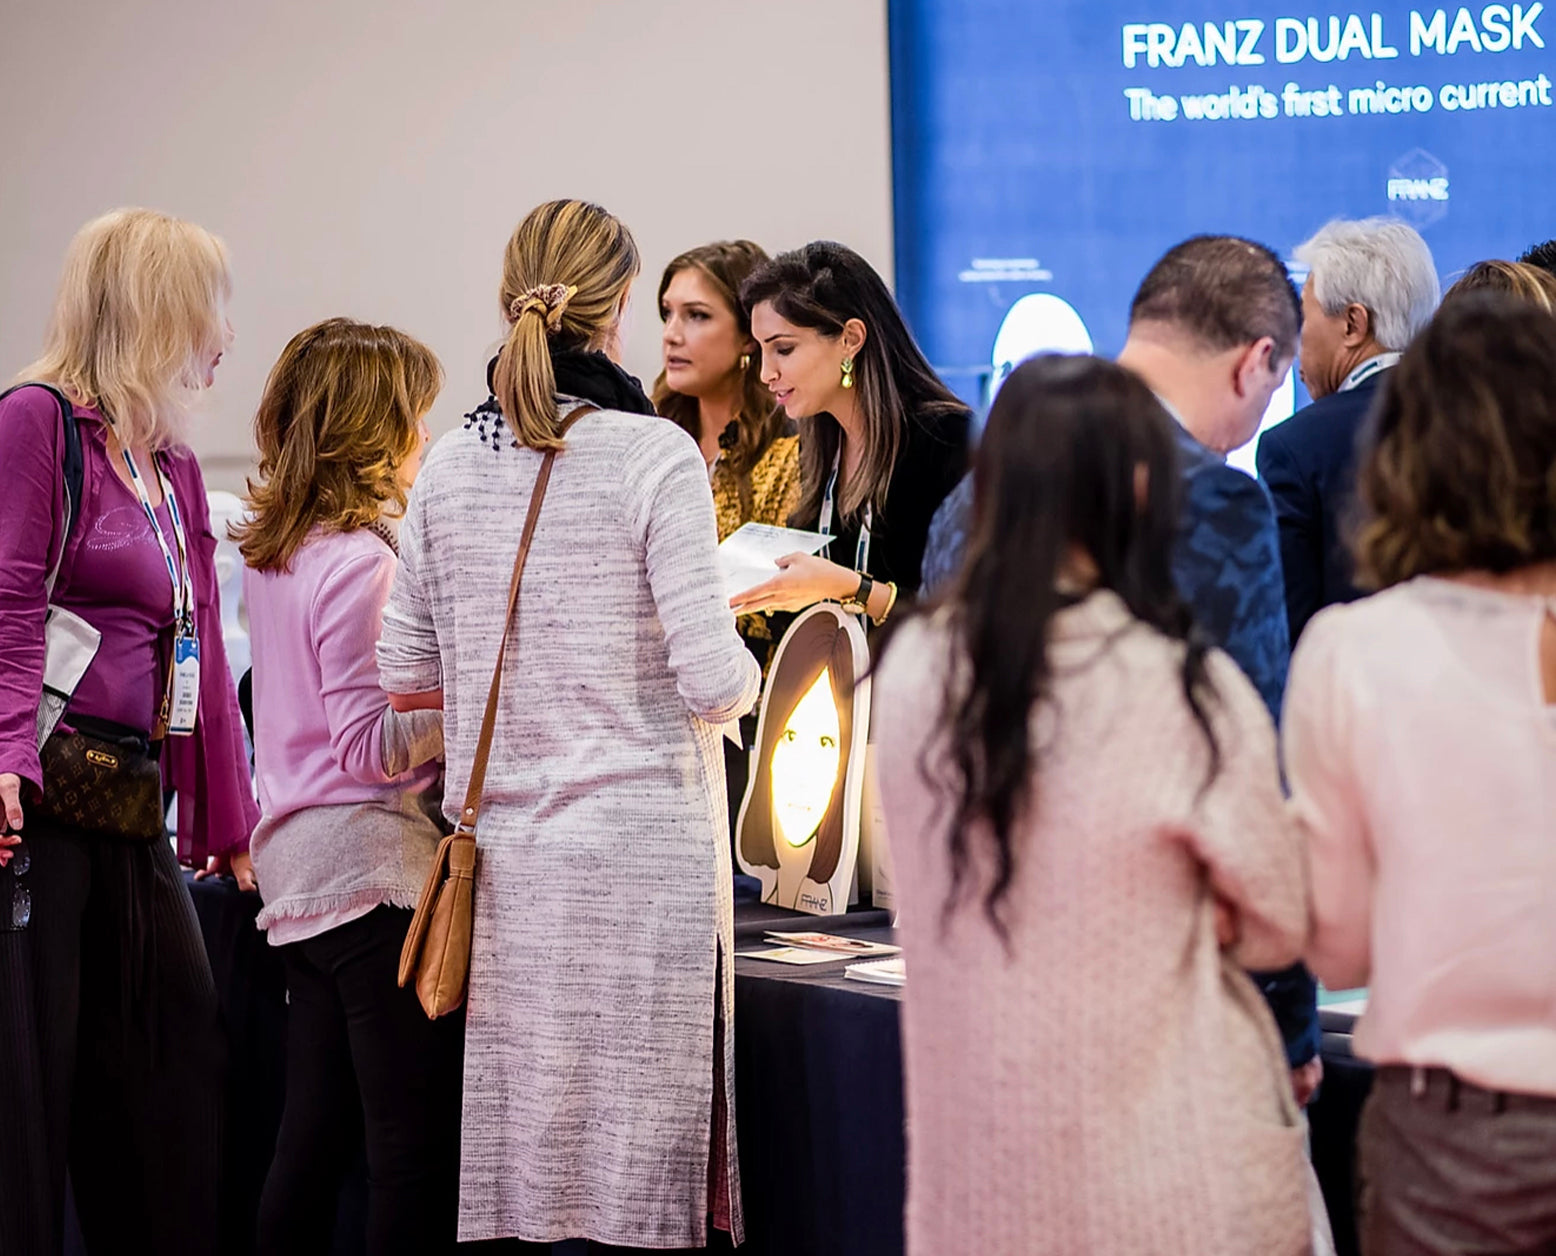 FRANZ Showcases At The Academy For Anti-Aging & Medicine